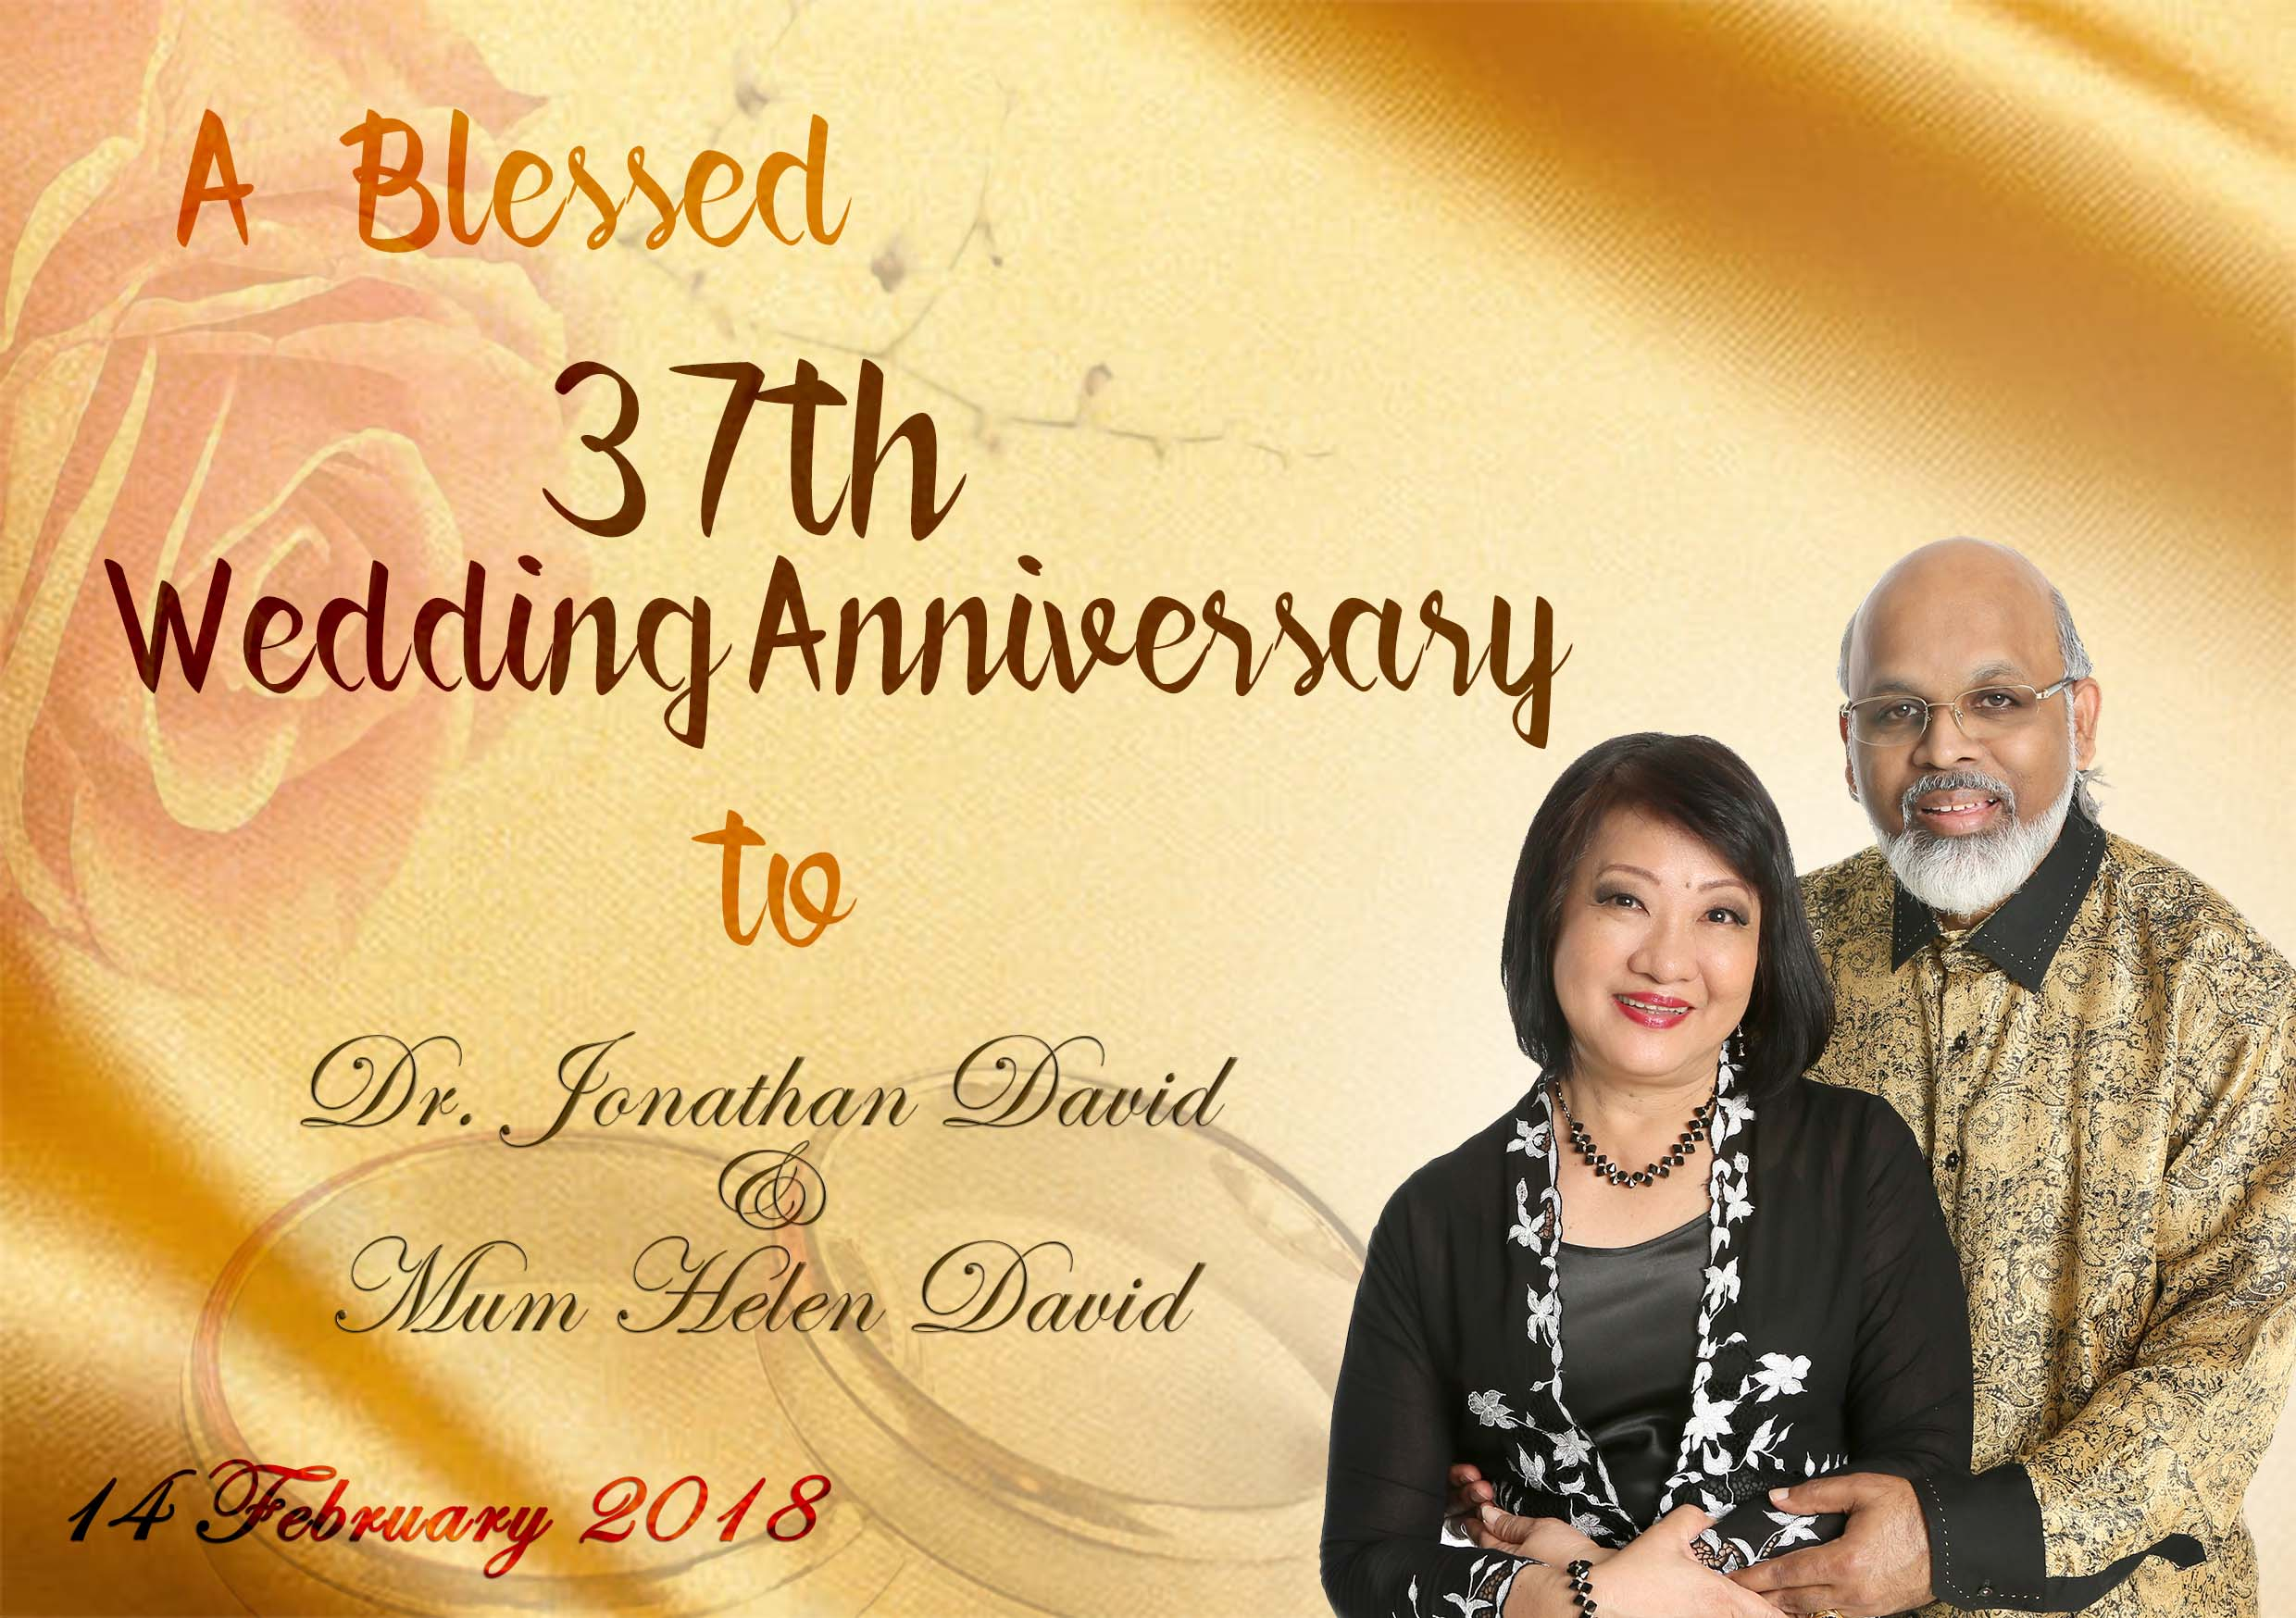 37th Wedding Anniversary Gifts: Blessed 37th Wedding Anniversary